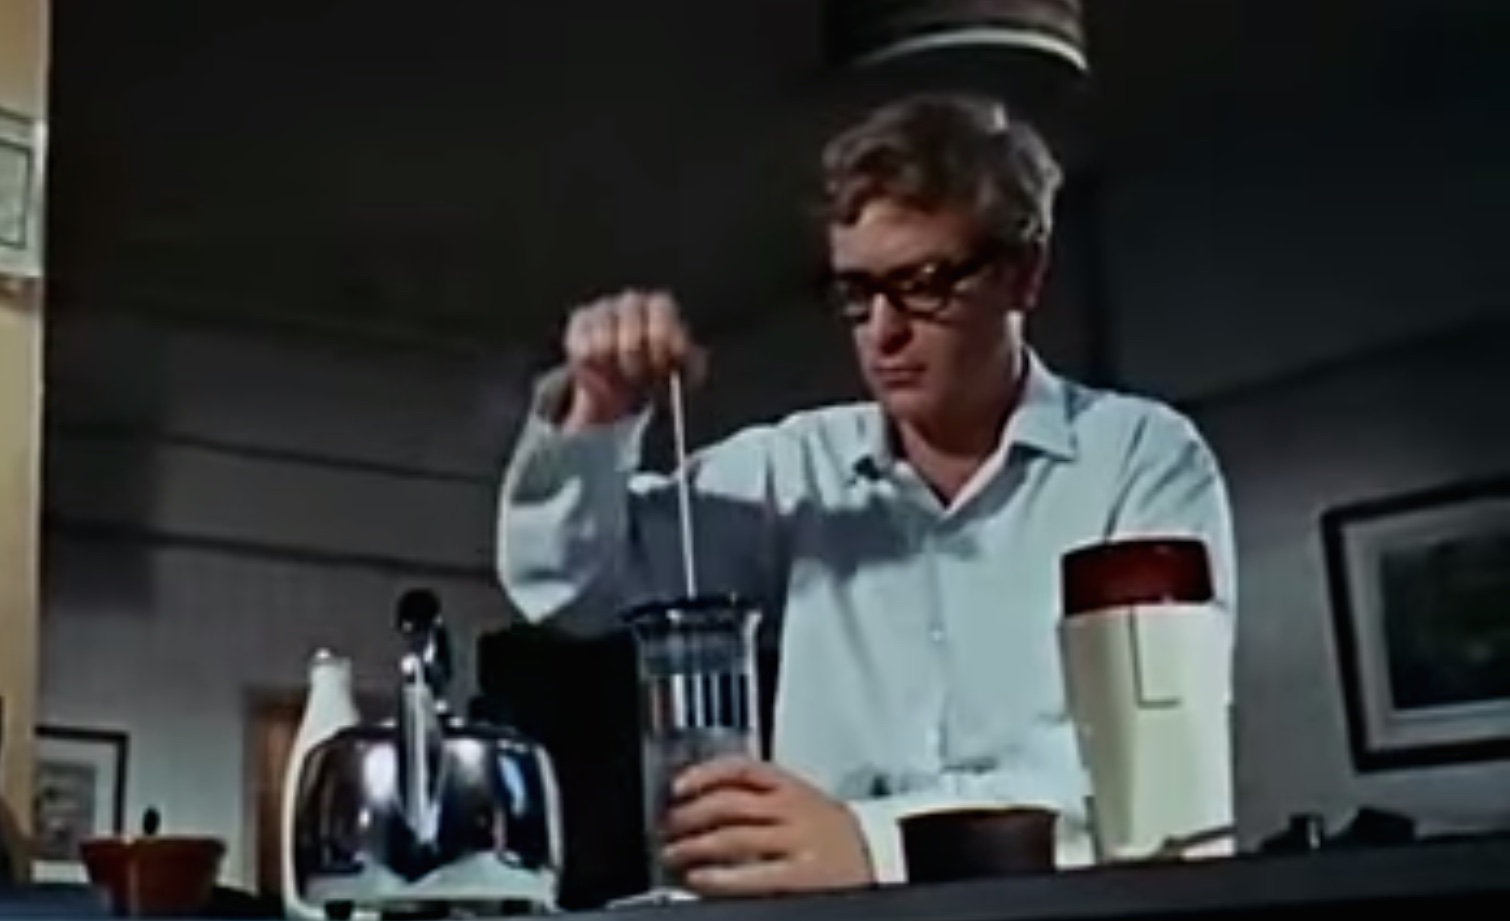 Michael Caine making coffee at the beginning of The Ipcress File